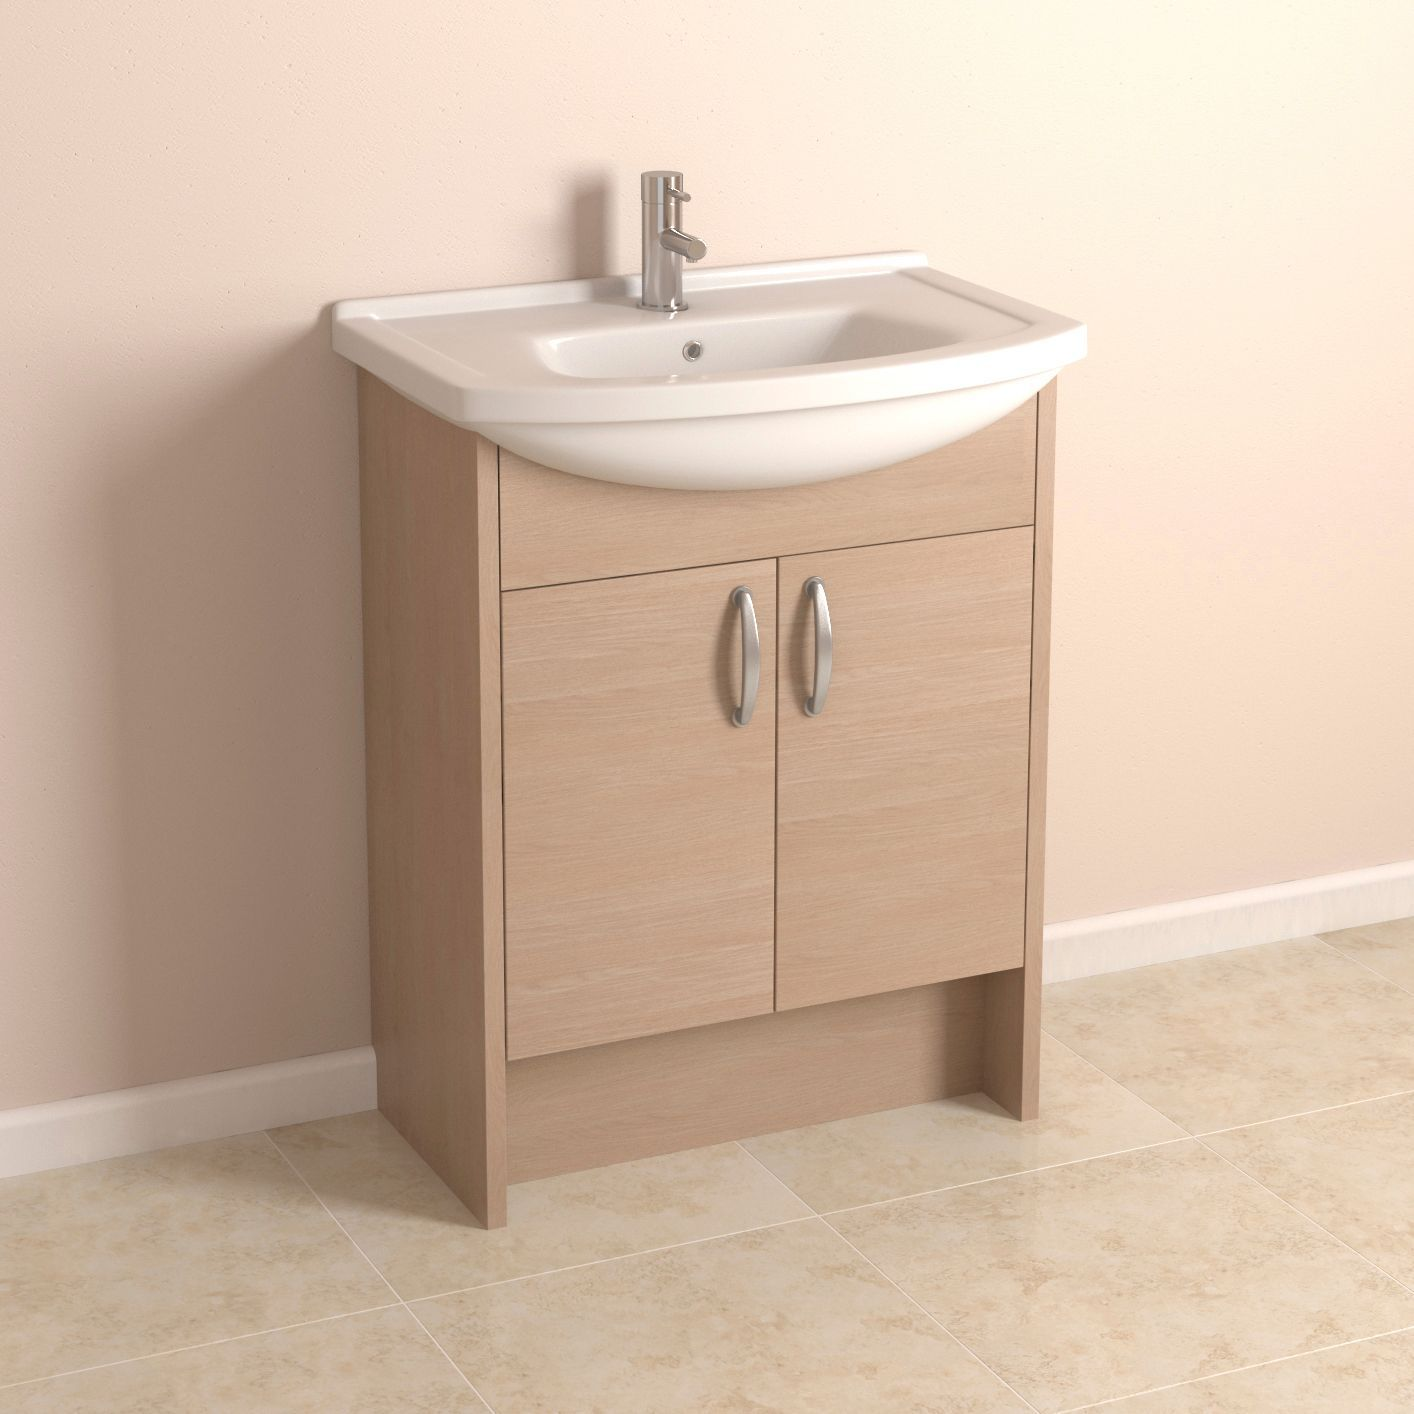 enza oak effect vanity unit with clad on end panels 22981